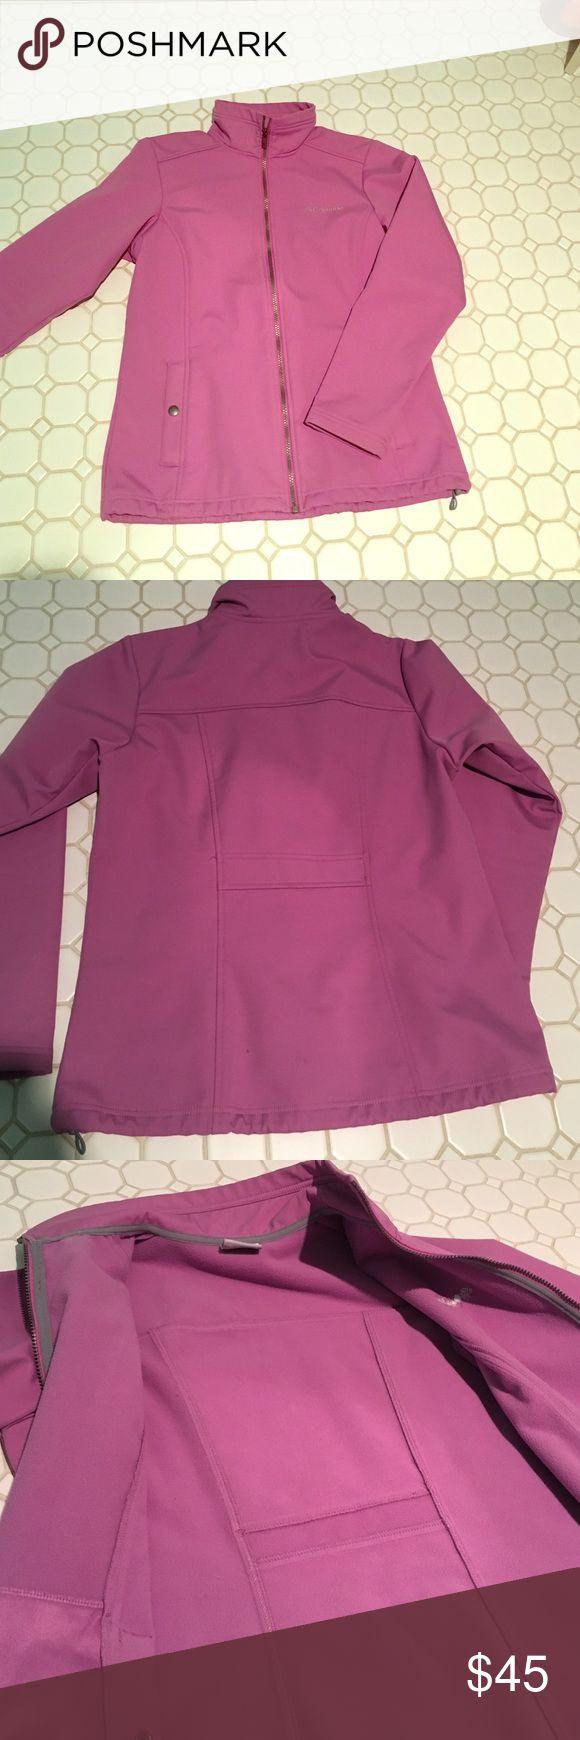 Columbia Coat Has the hard shell outside. It is a lighter purple. Has fleece lining the inside. Worn only a couple times. Perfect condition! Jackets & Coats